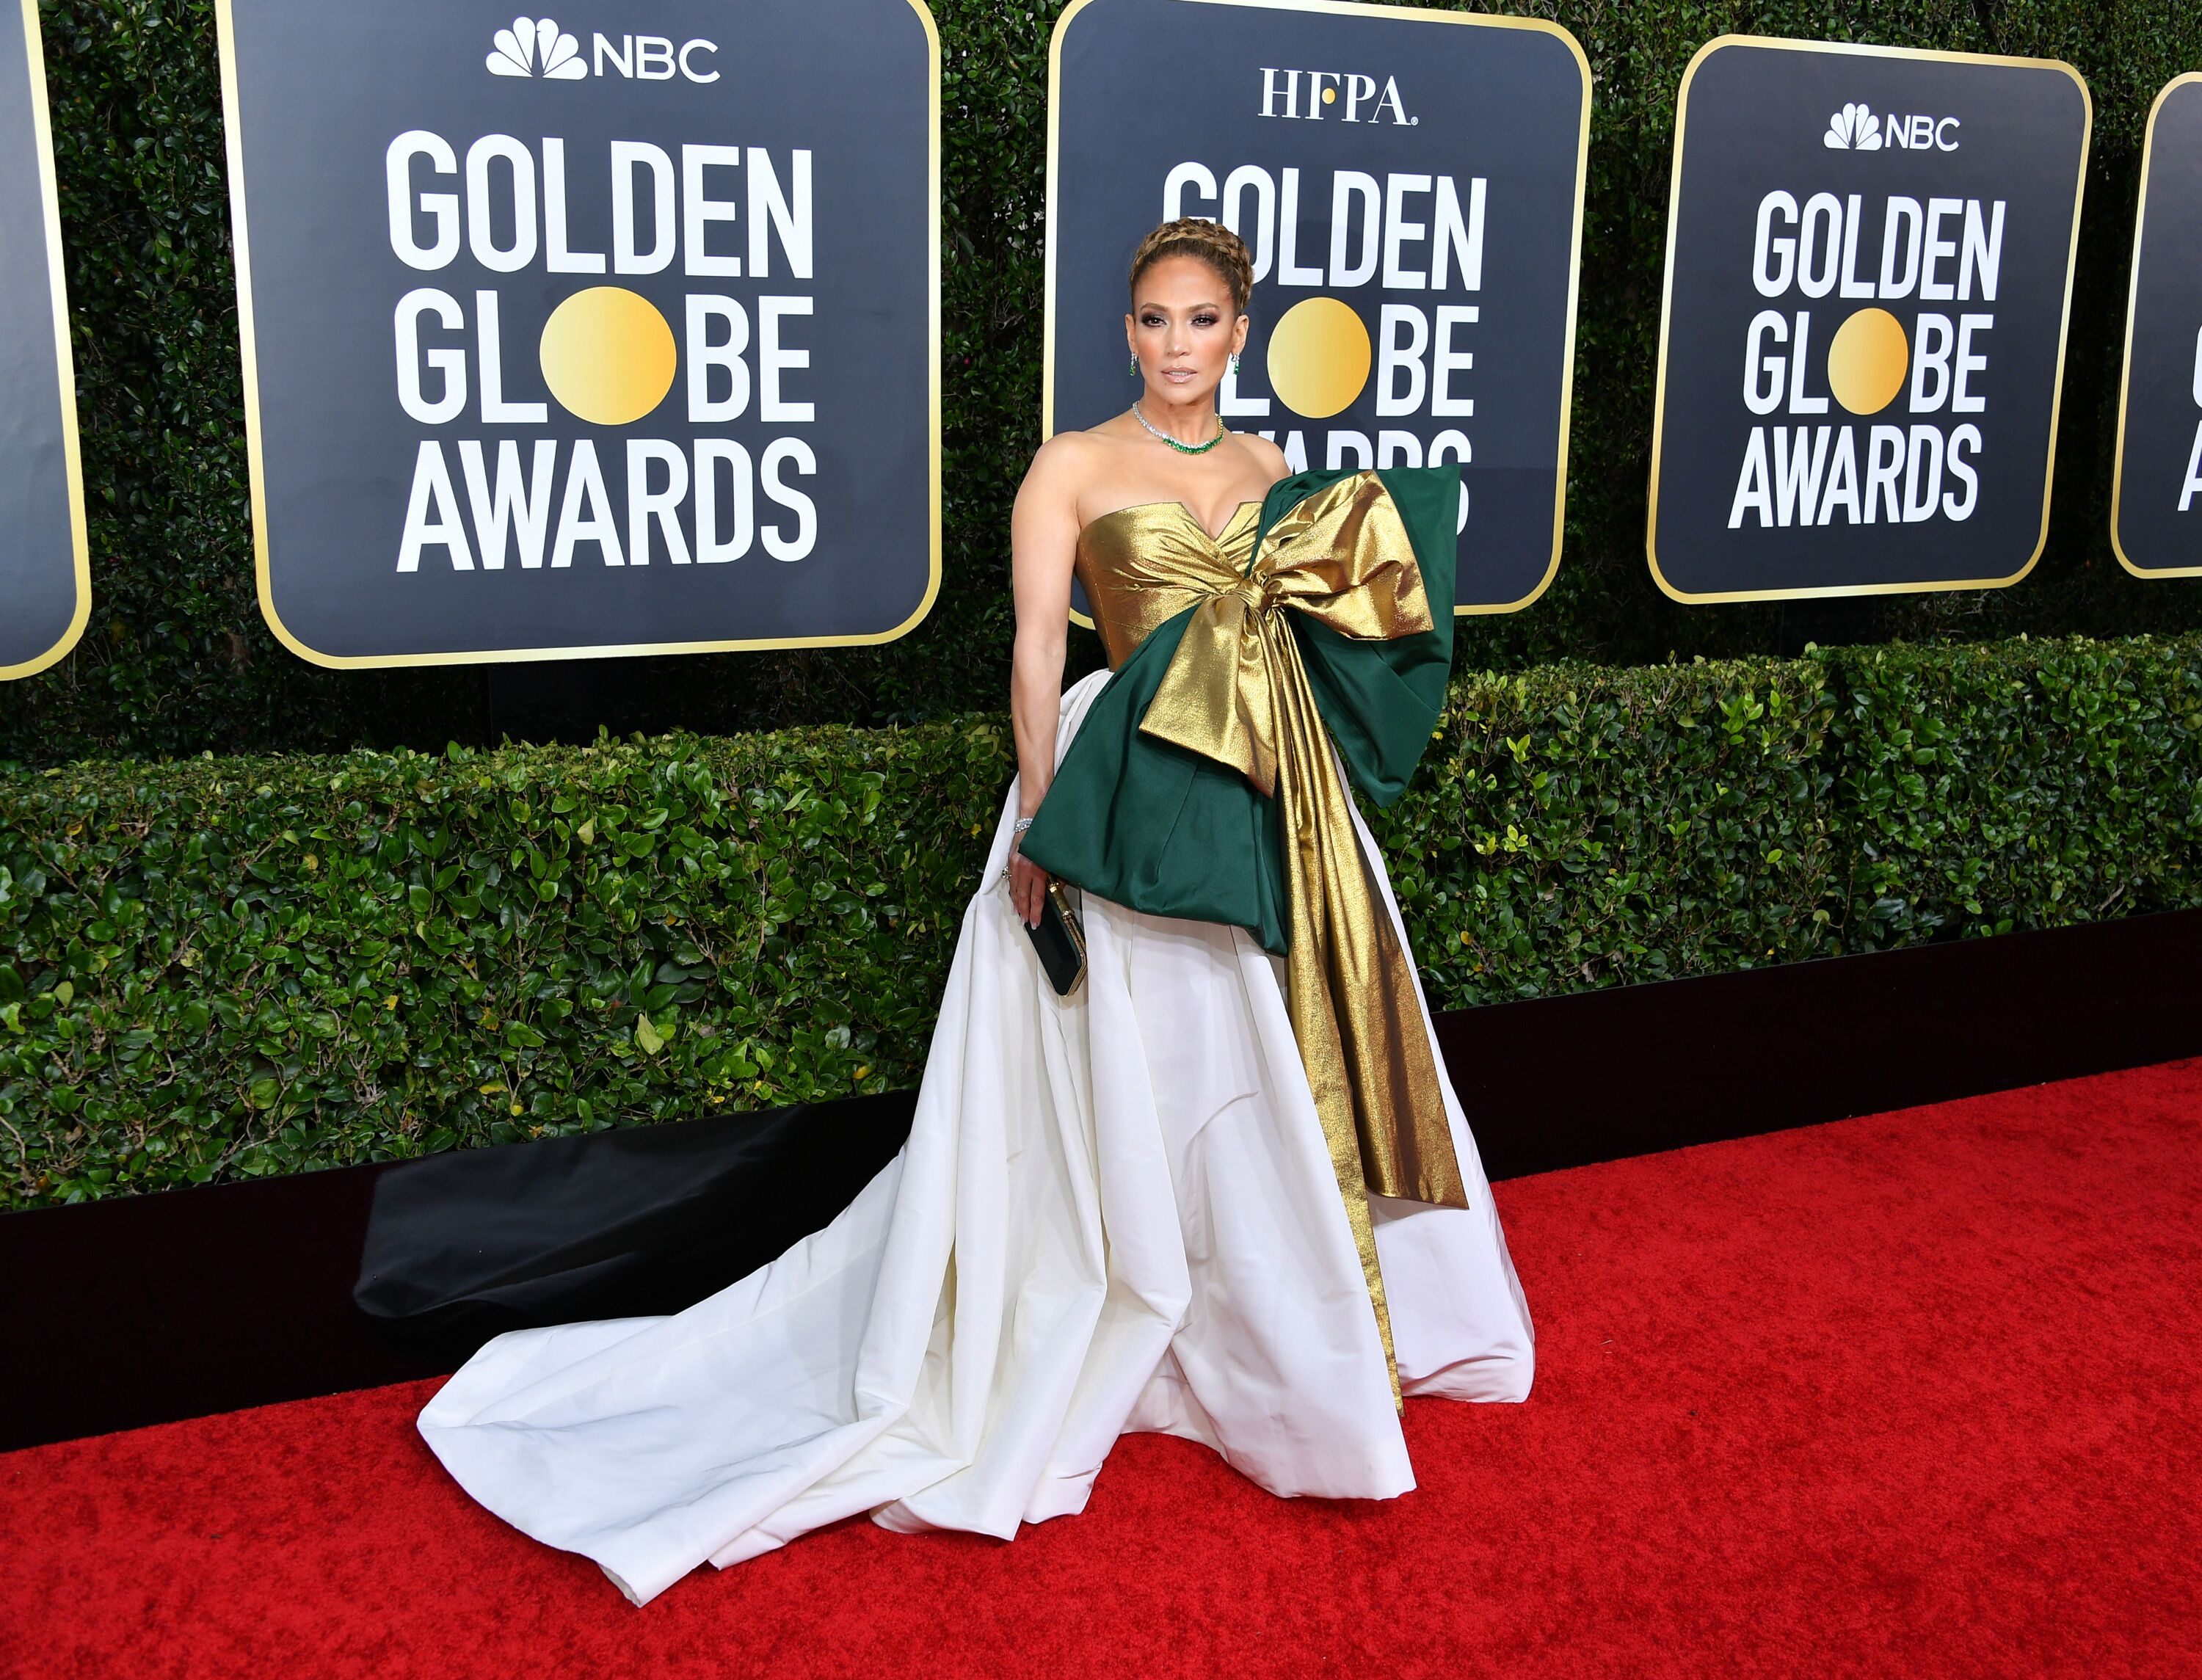 Jennifer Lopez at the 77th Annual Golden Globe Awards on January 05, 2020. | Photo: Getty Images